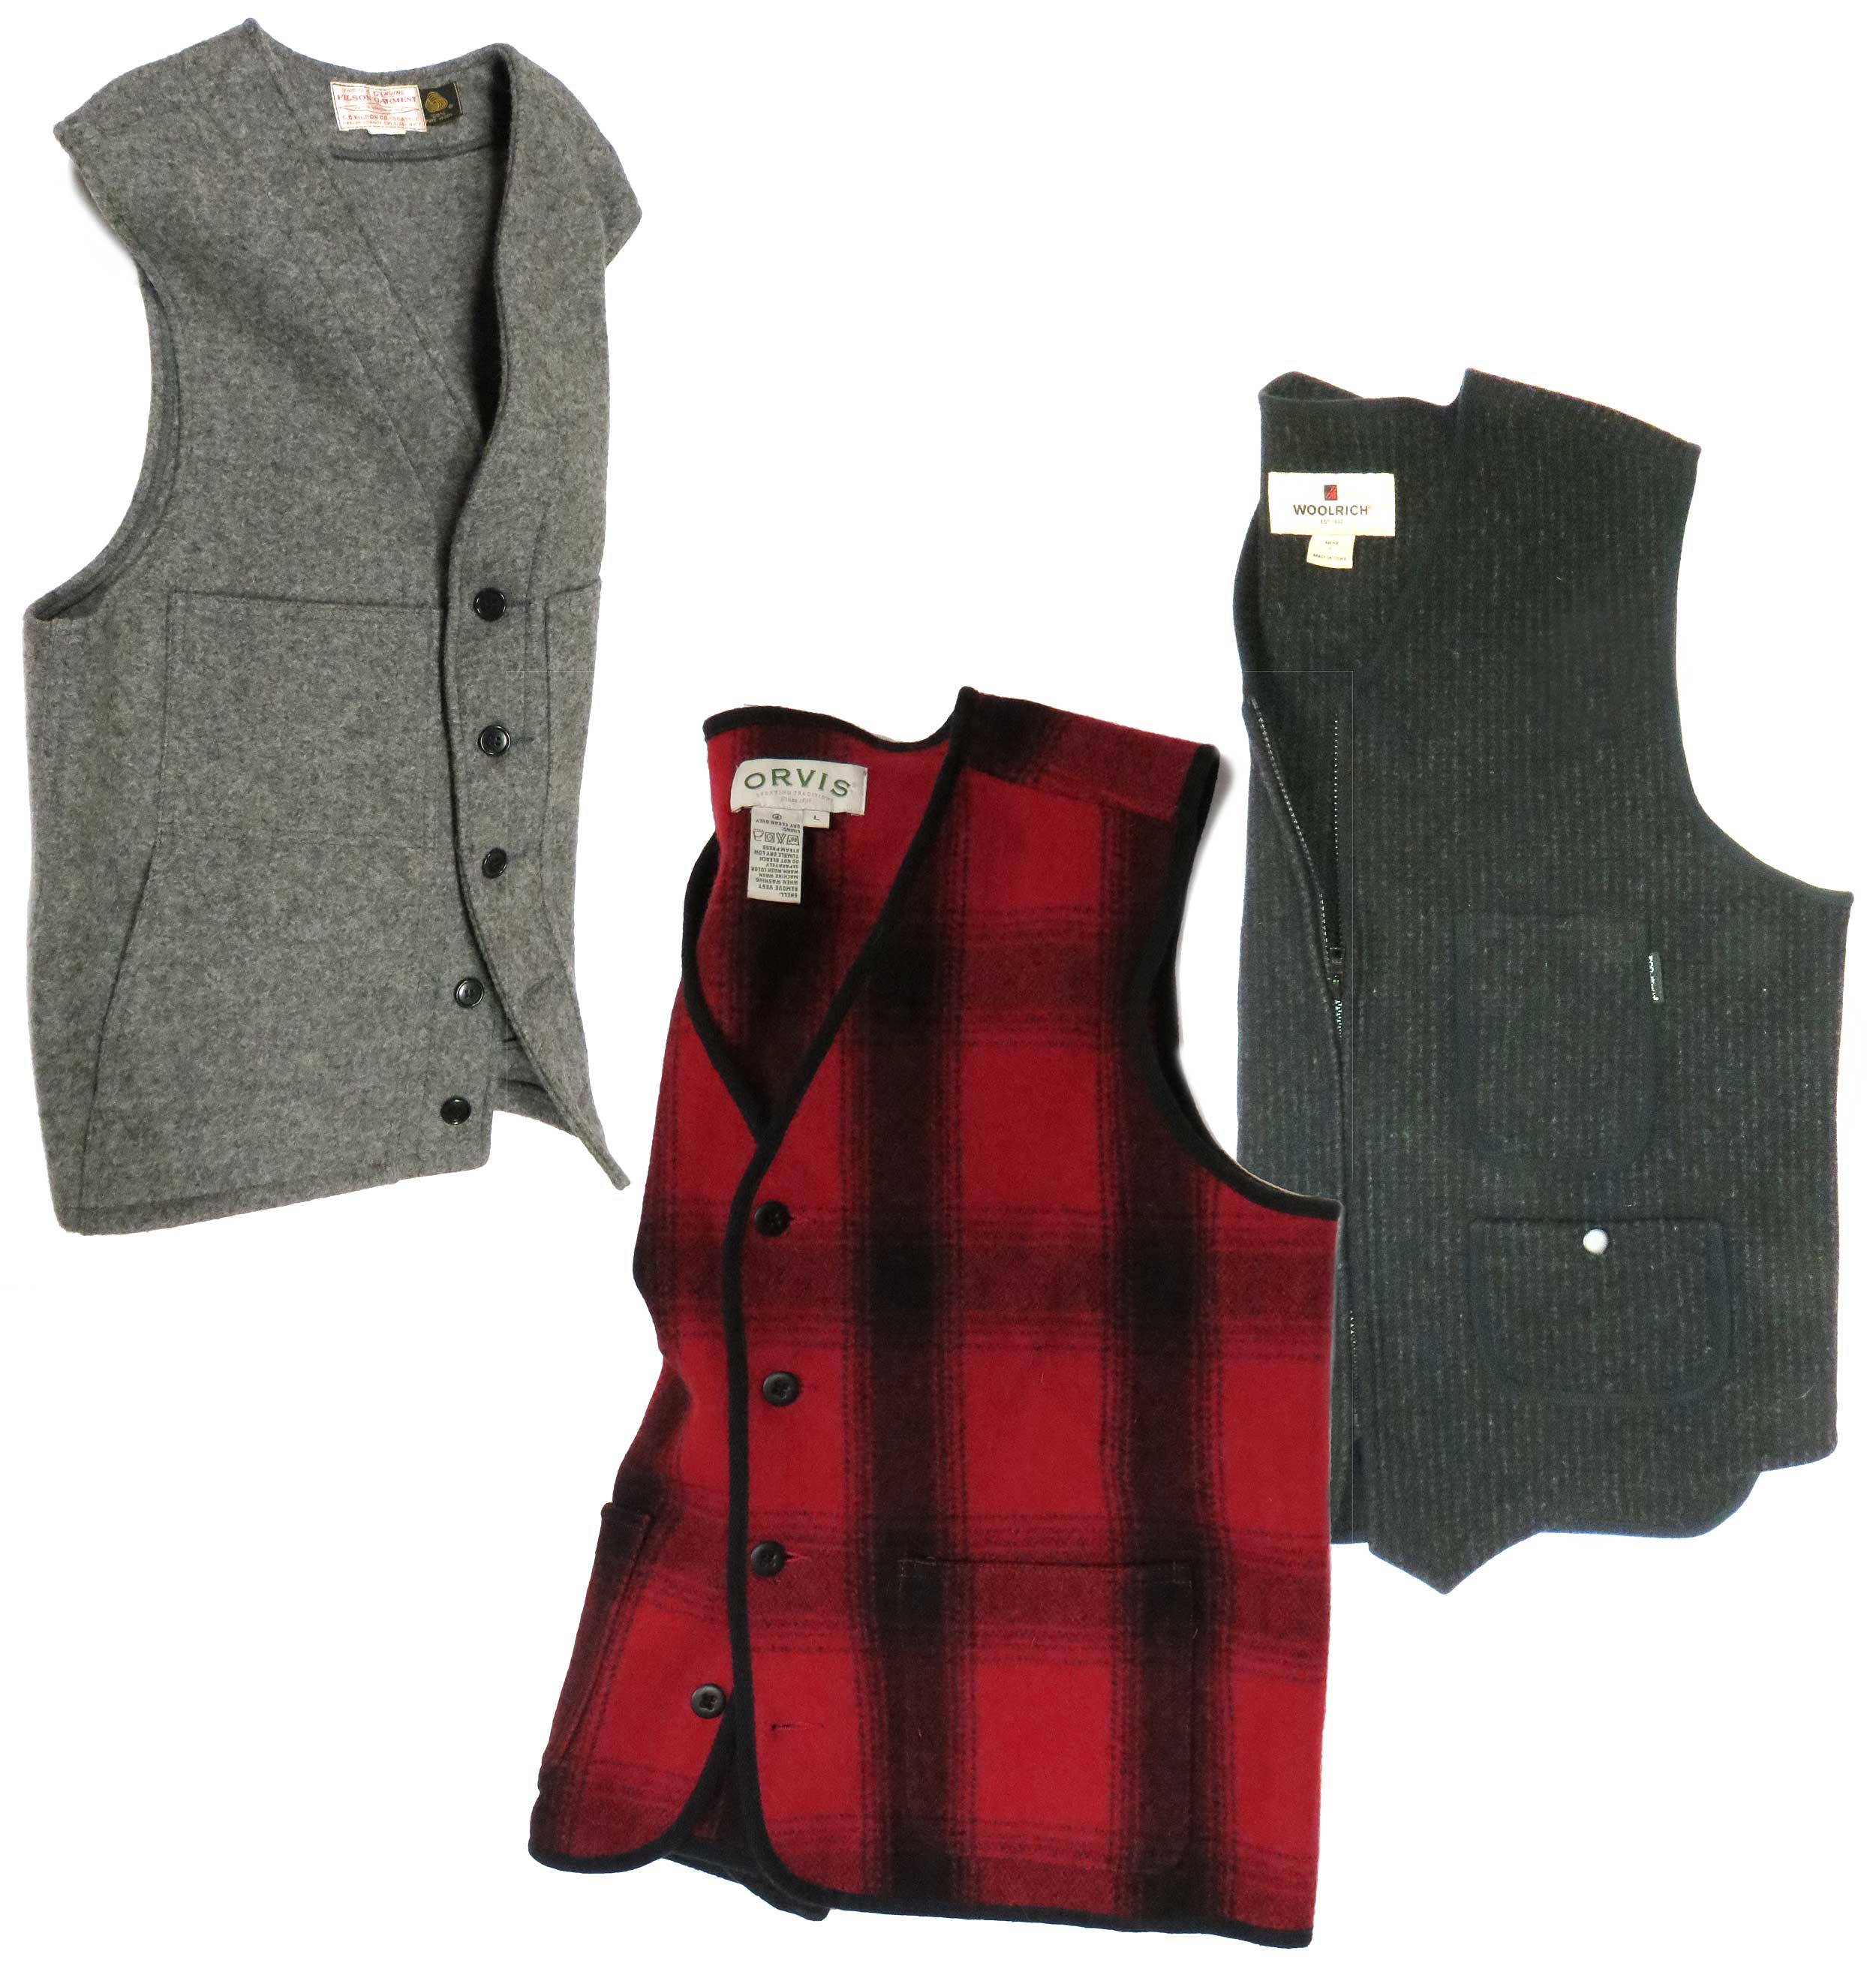 Heritage Wool Hunting Vests